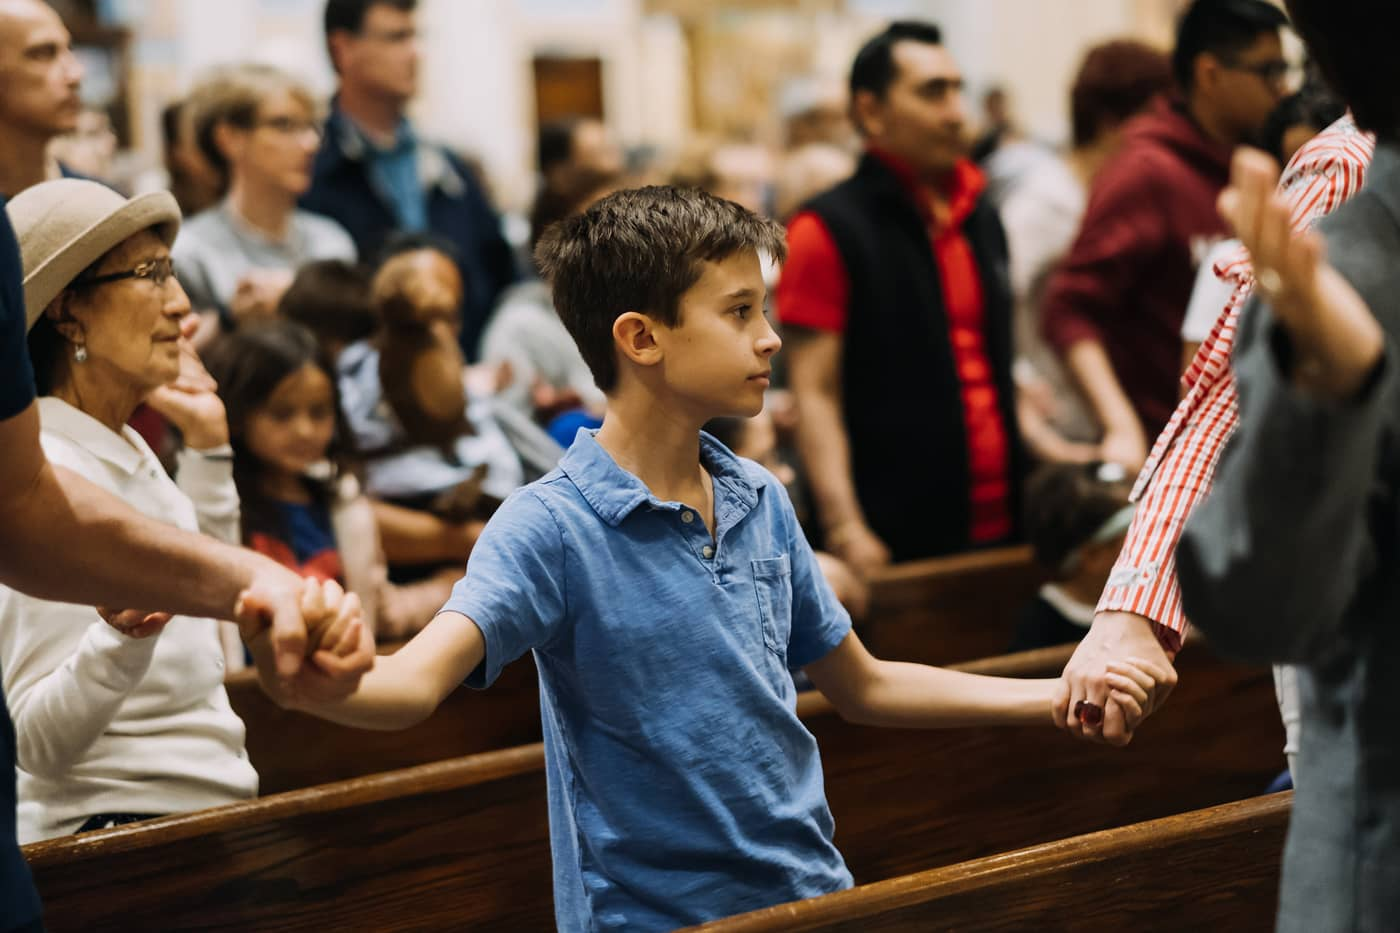 child-youth-group-young-kids-community-prayer-st-francis-de-sales-church-new-york-city.jpg